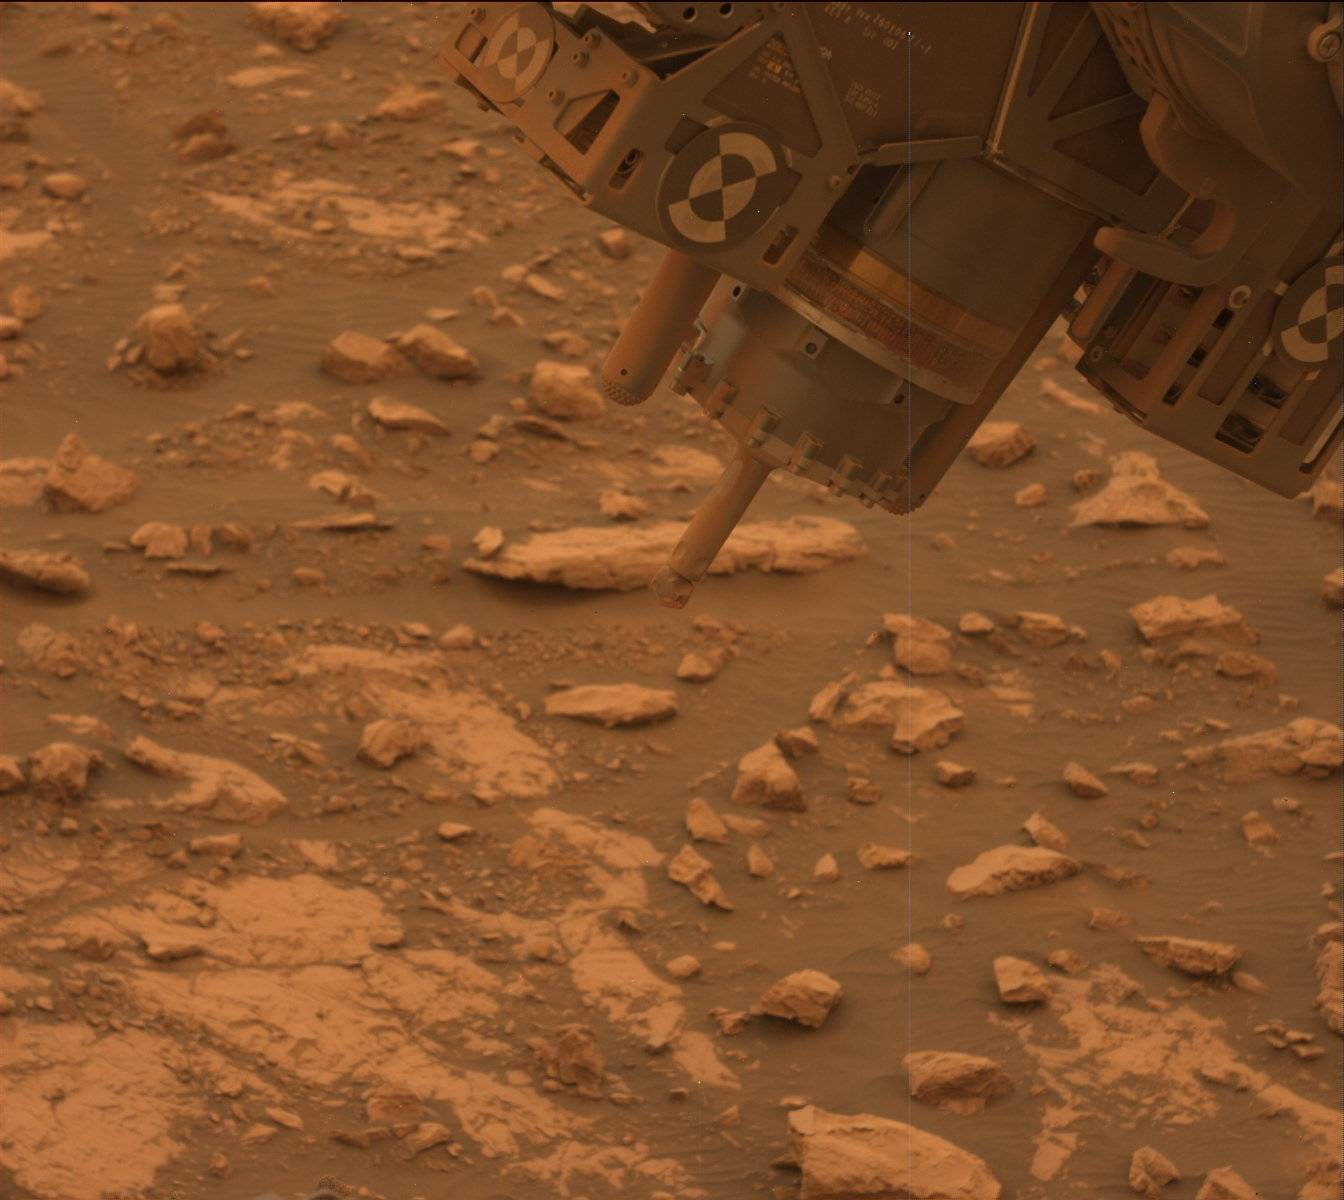 Nasa's Mars rover Curiosity acquired this image using its Mast Camera (Mastcam) on Sol 2113